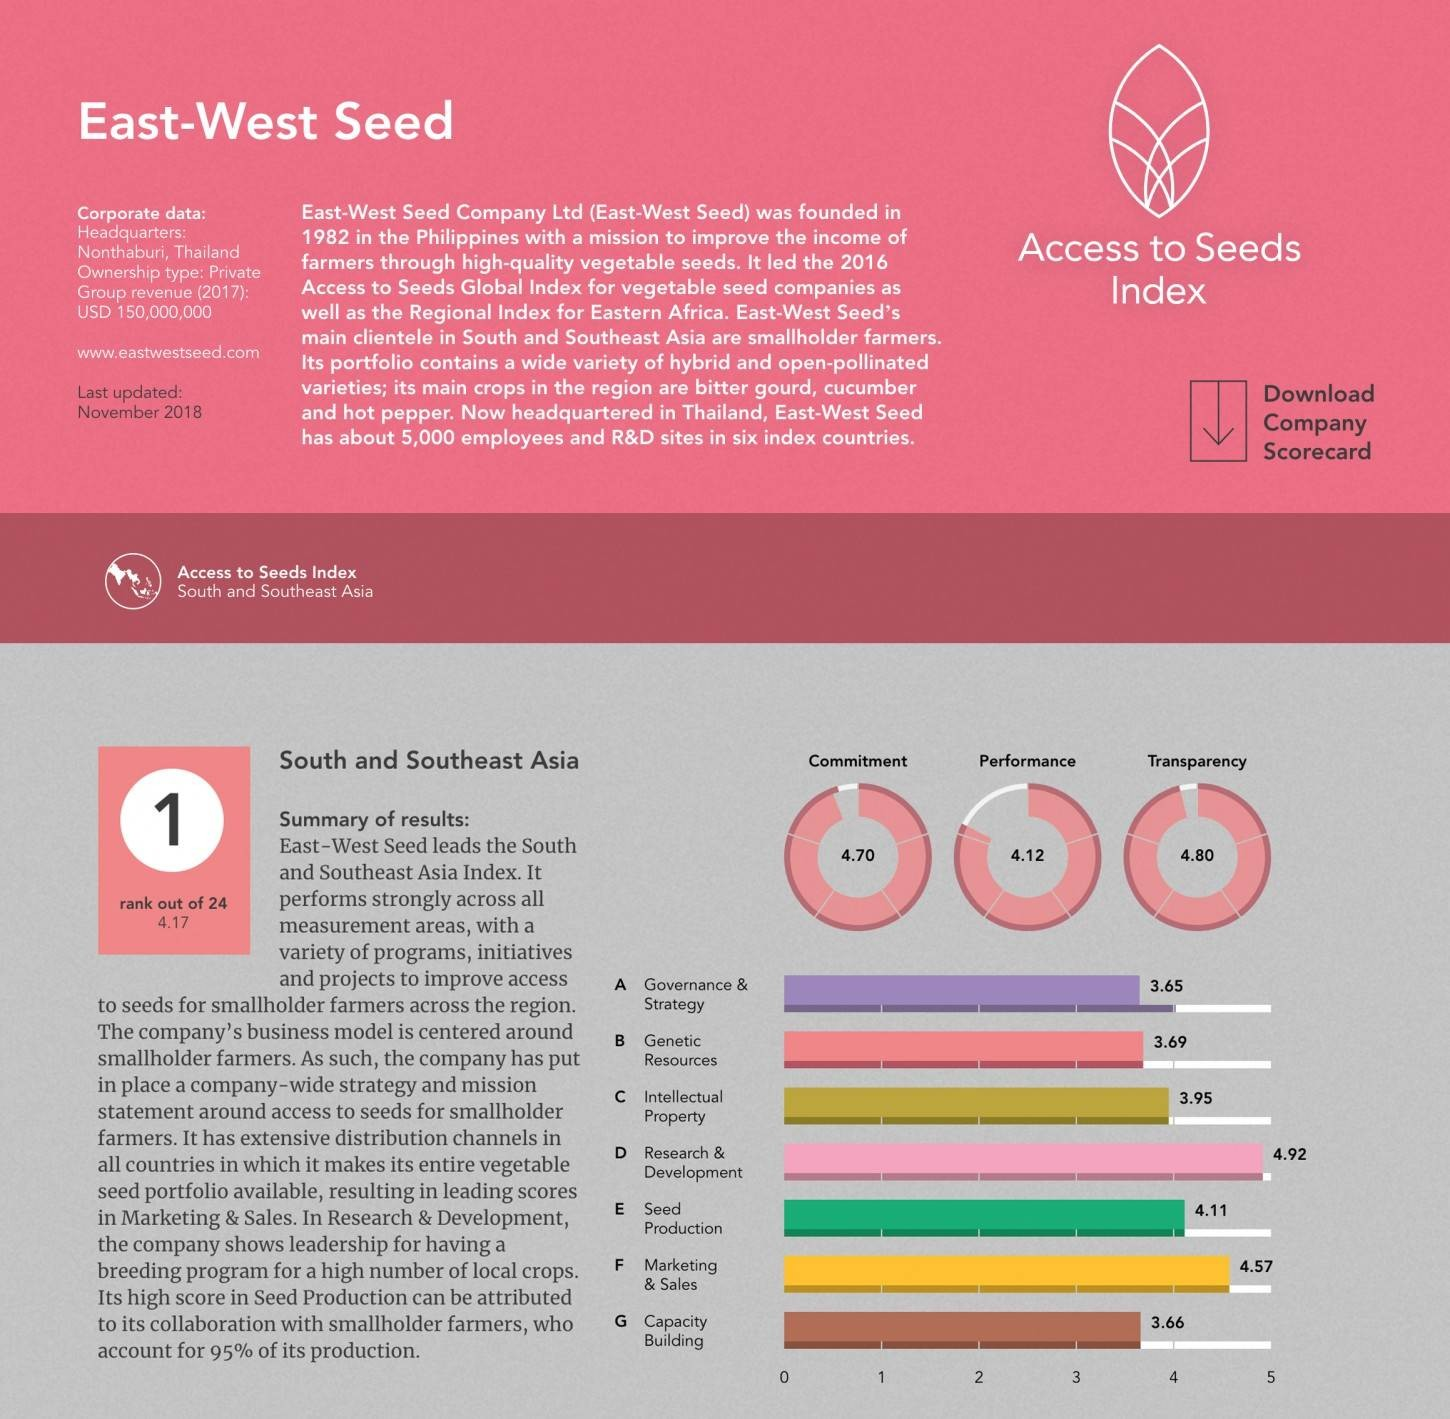 Access To Seeds Index 2019